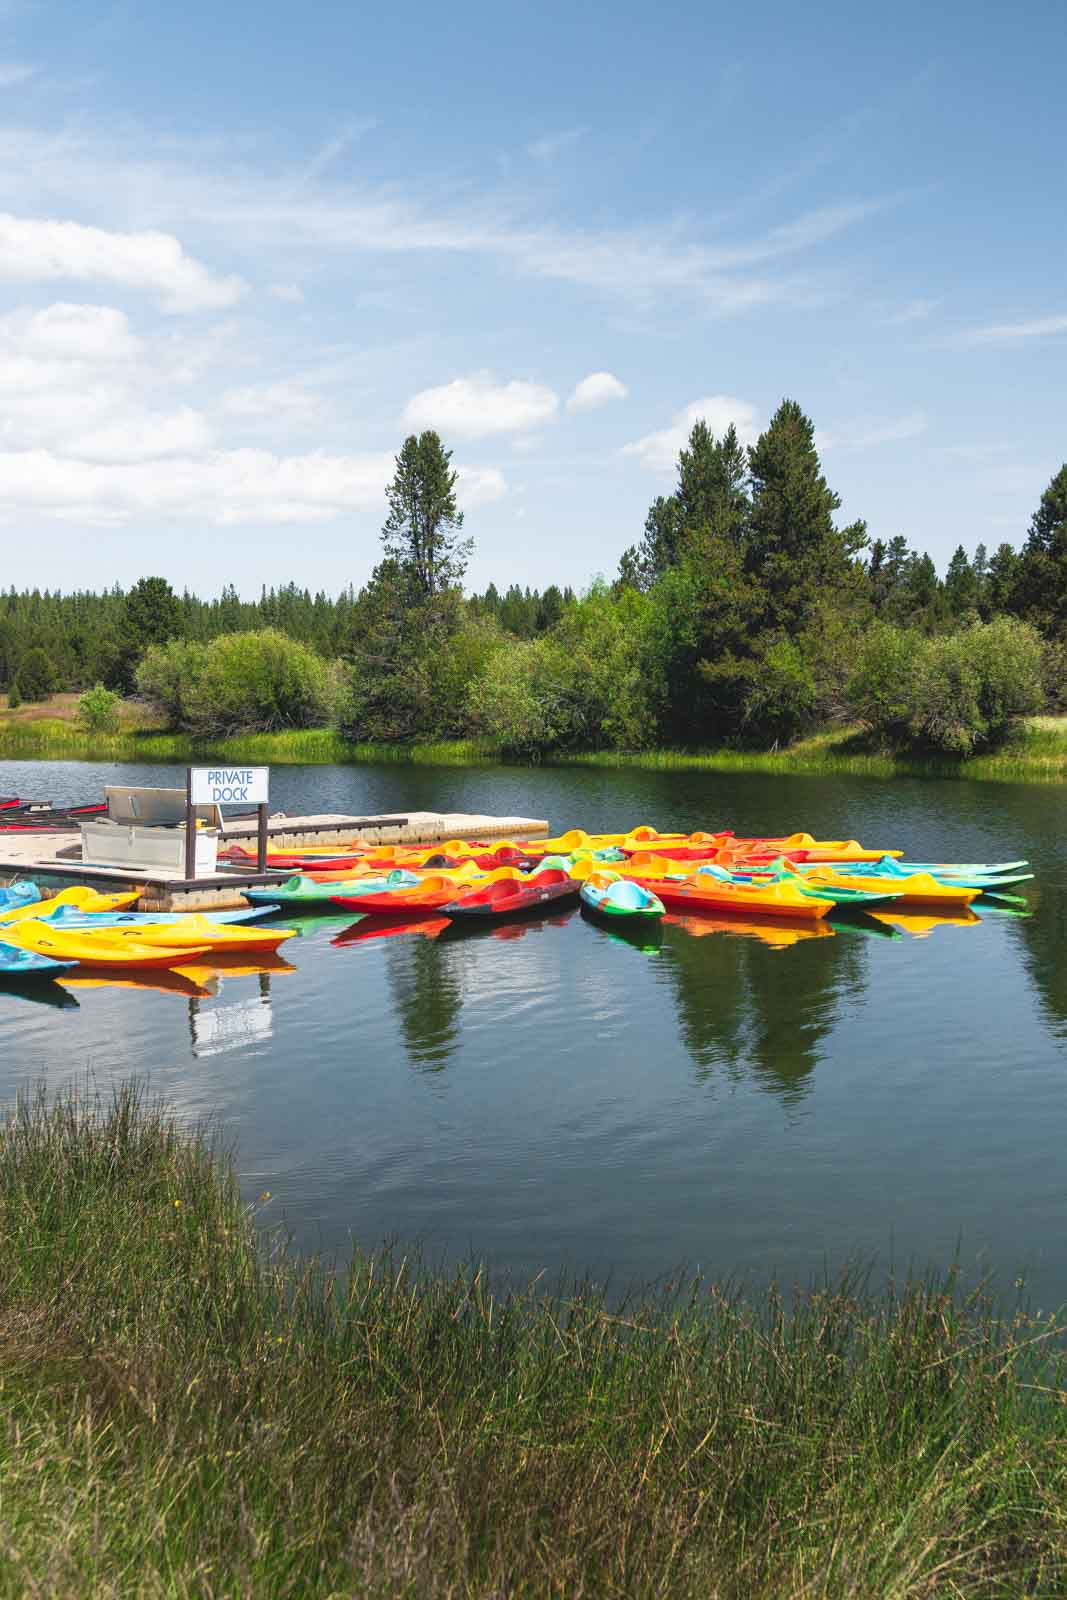 Kayaking is a fun thing to do in Sunriver.